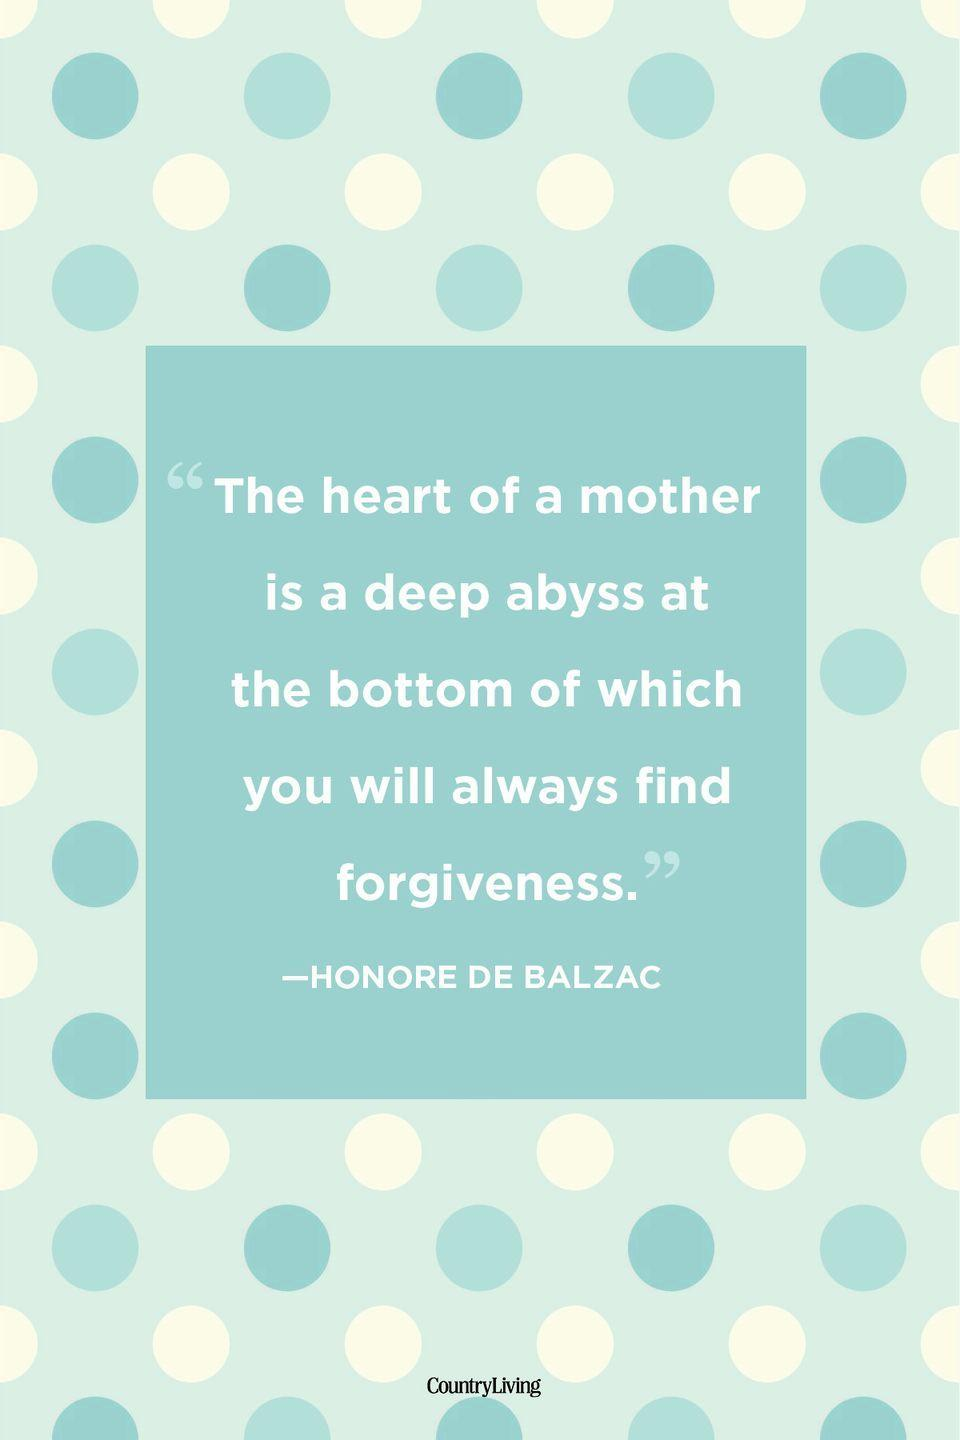 "<p>""The heart of a mother is a deep abyss at the bottom of which you will always find forgiveness.""<br></p>"